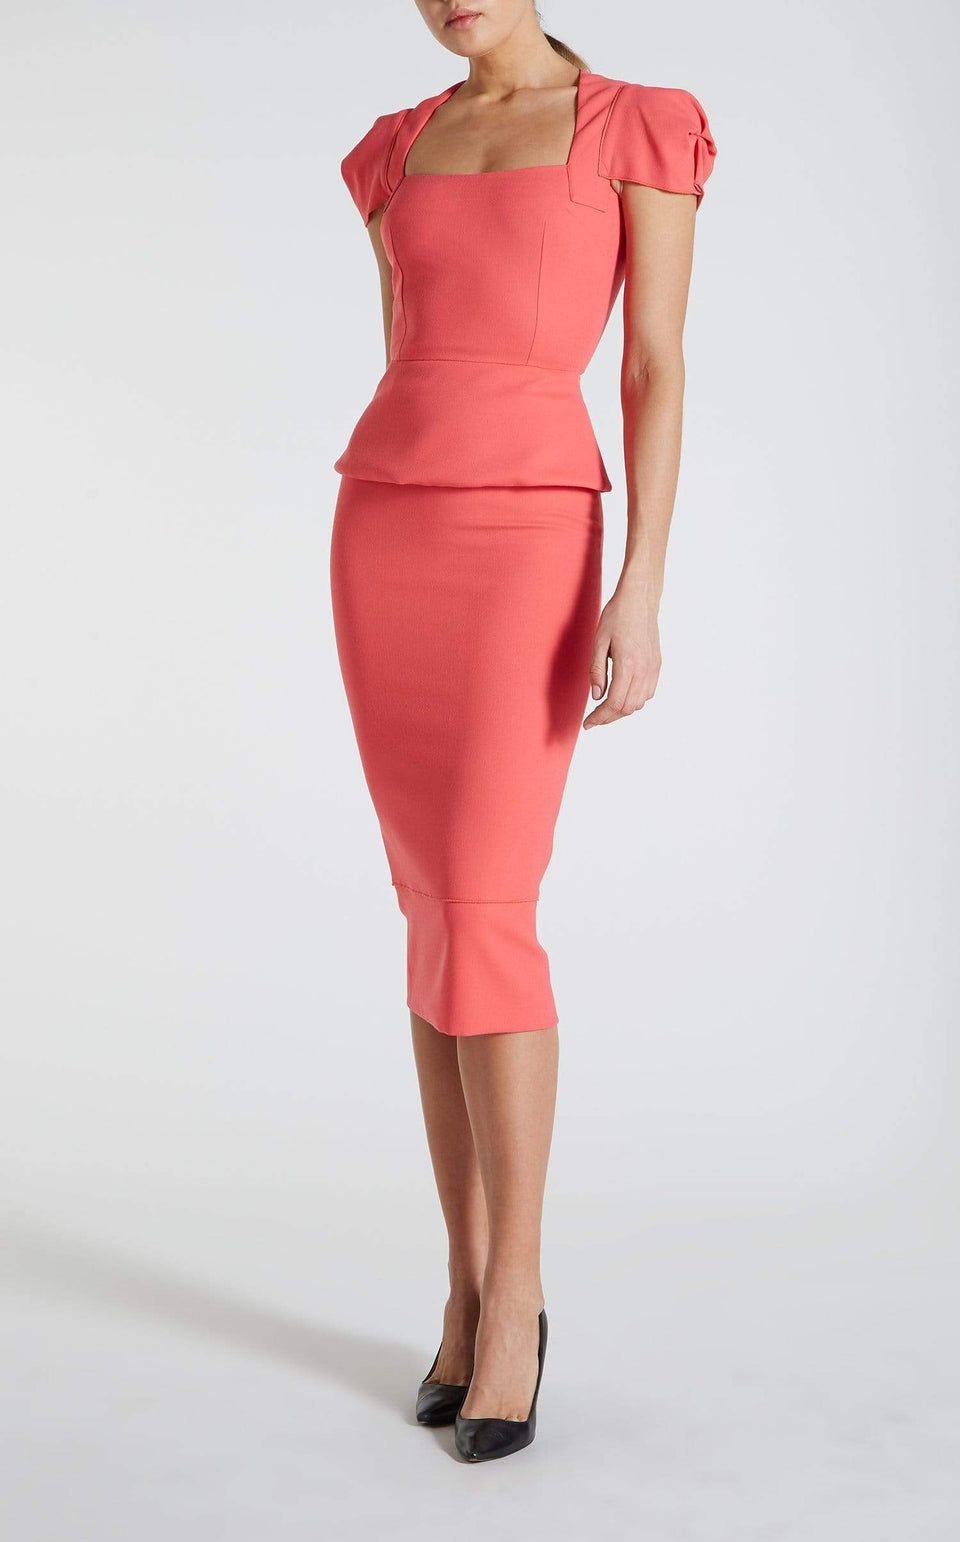 Galaxy Skirt In Rose Pink from Roland Mouret